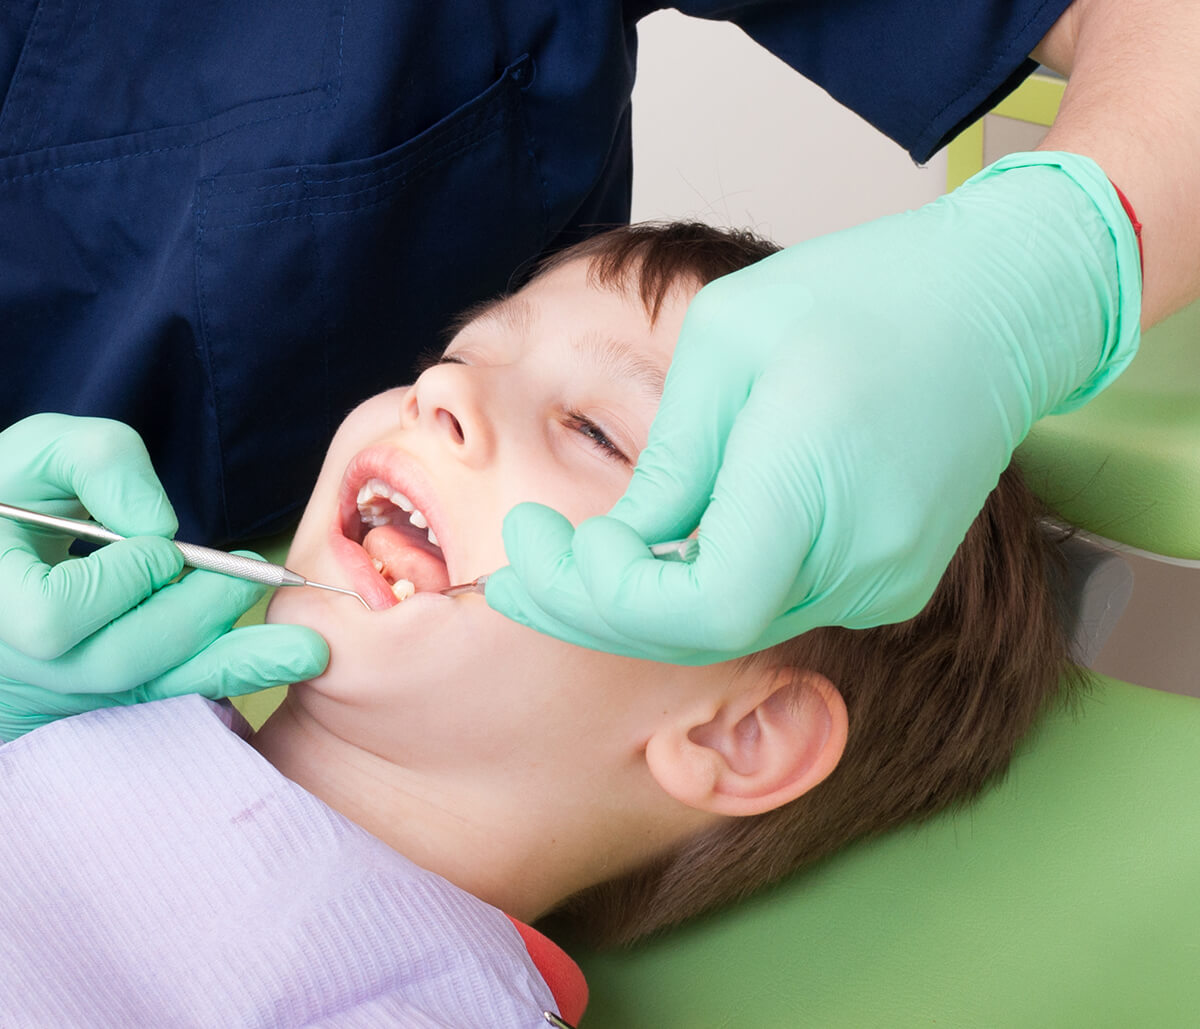 Kids Dental Extractions at Triad Pediatric Dentistry in Greensboro NC Area